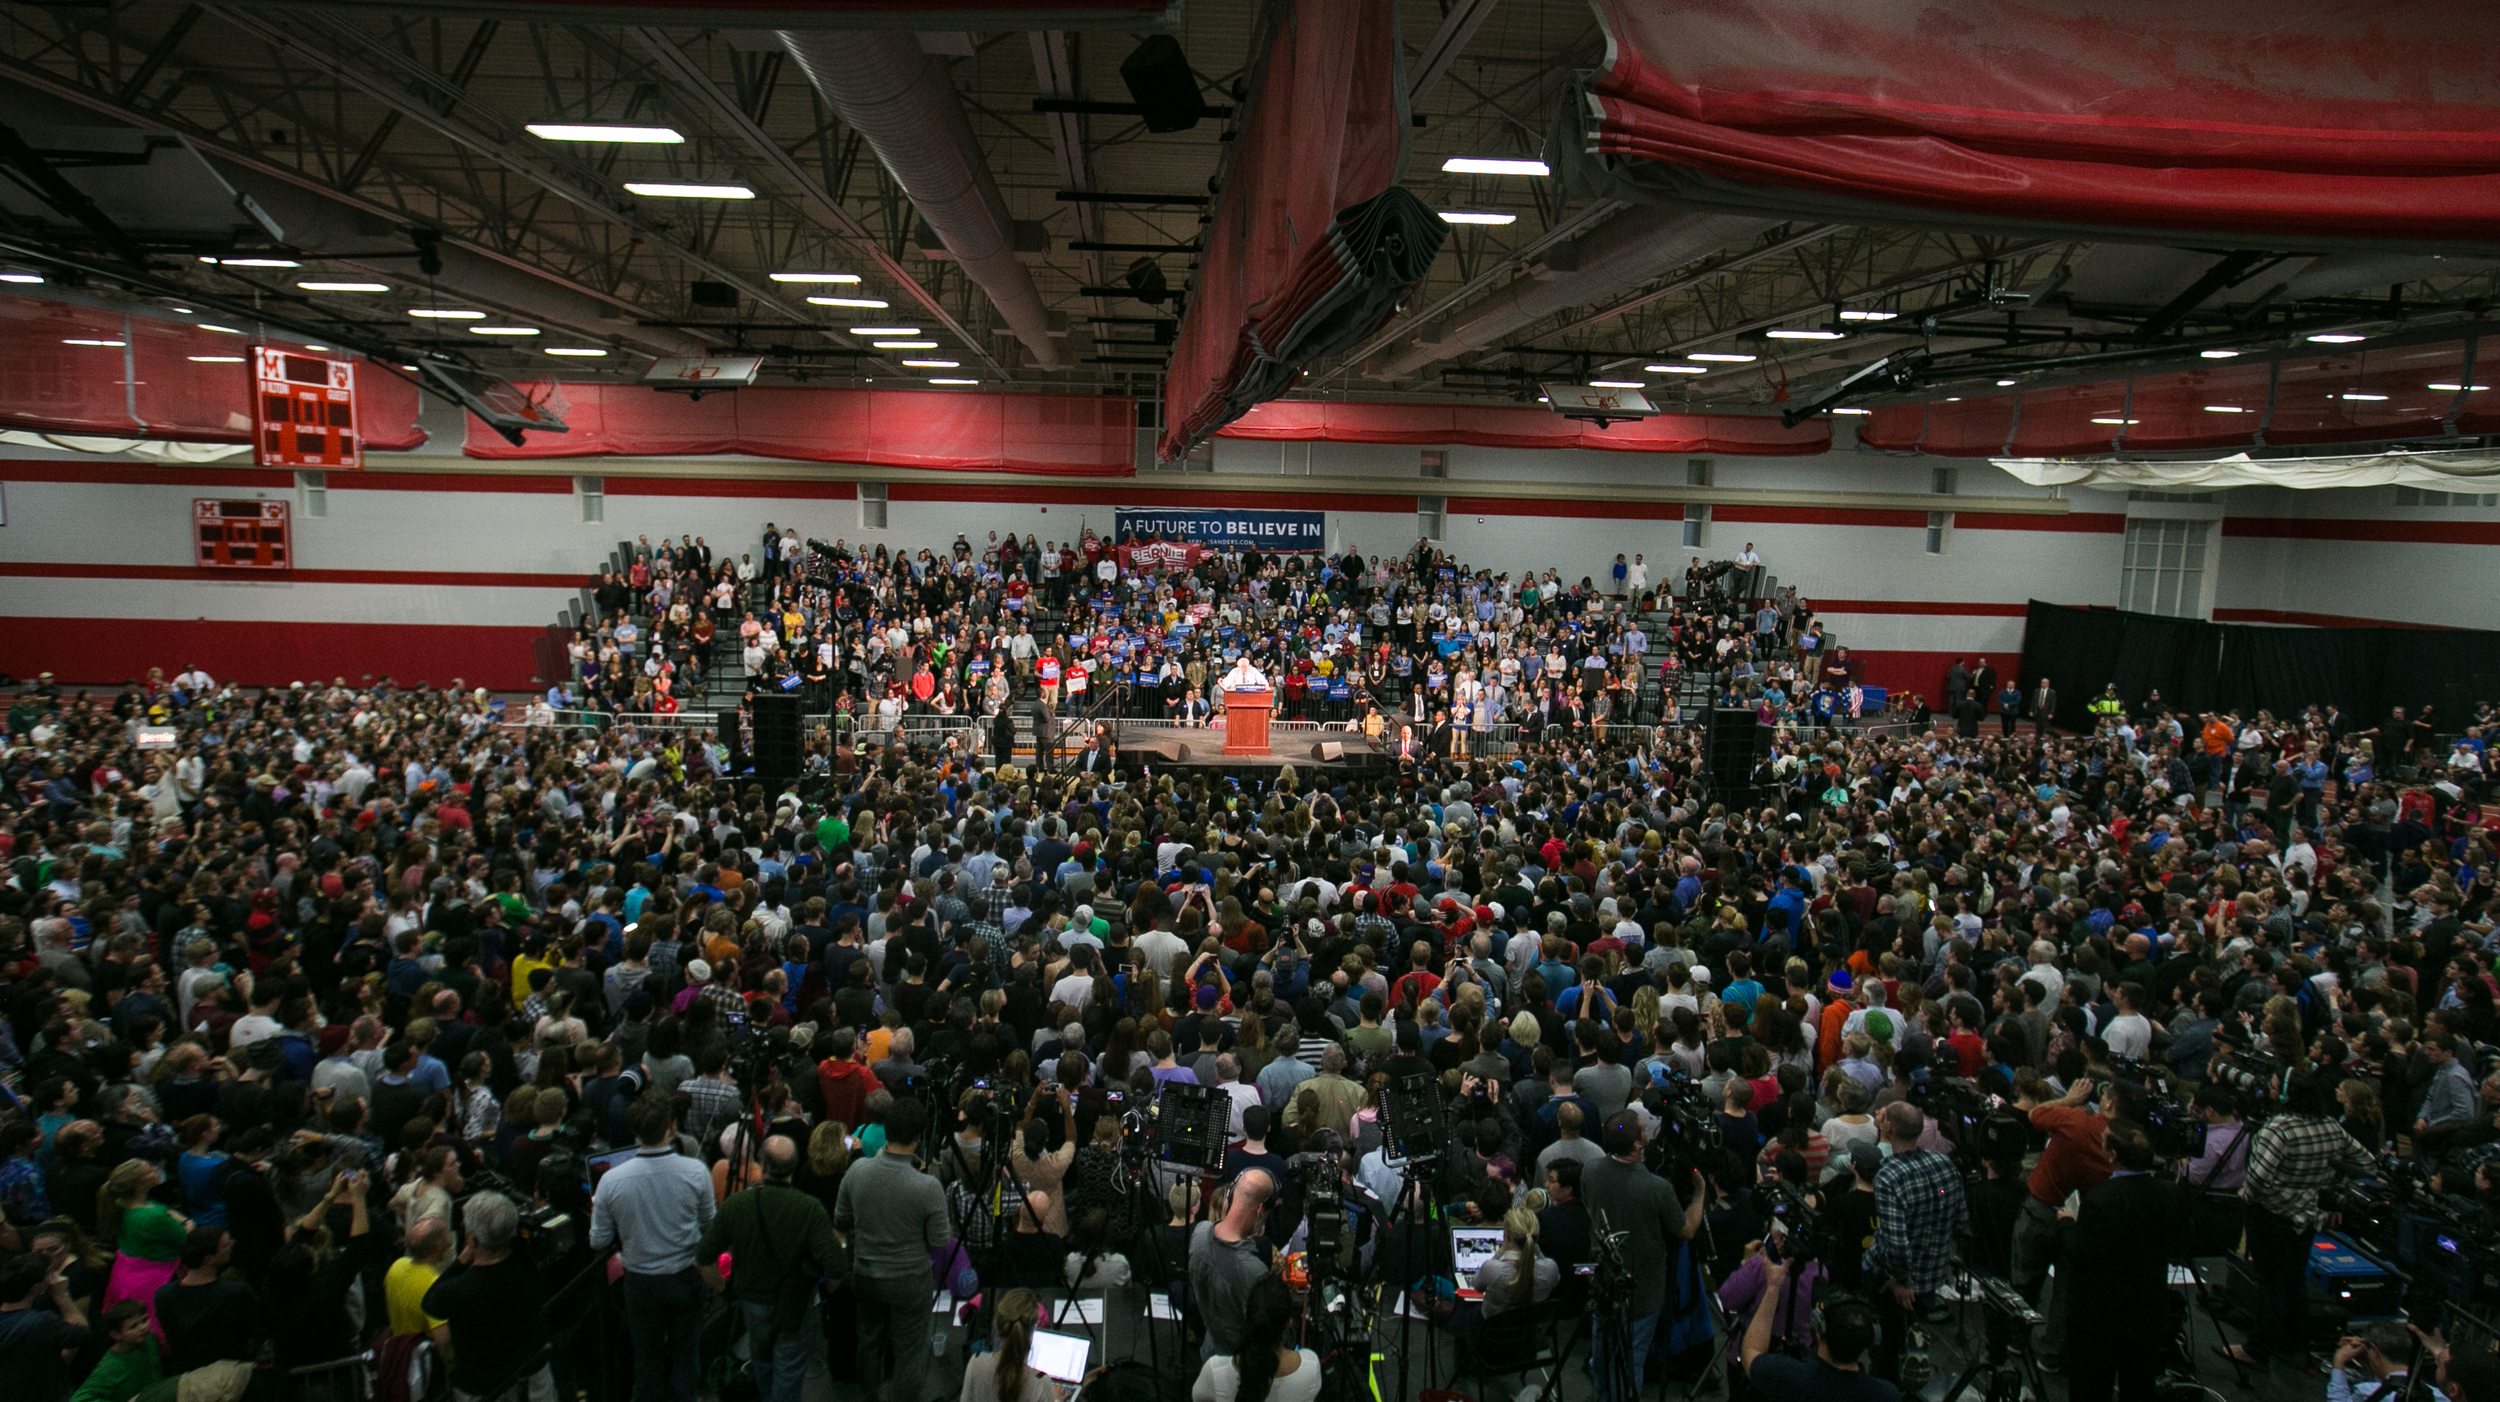 "February 29, 2016 - U.S. Senator Sanders D-Vt. speaks at a rally of 3330 voters in Milton, Mass. on the eve of Super Tuesday. ""Massachusetts led the American Revolution,"" Sanders said. ""Now it's time for your state to lead a political revolution."" Sanders and his grassroots movement will face off with Super PAC-funded Secretary of State Hillary Clinton in a battle over 11 states. The March 1 vote will consist of more than 800 delegates, or one third of the delegates needed to claim the democratic nomination in the U.S. presidential election. ©Mike Schwarz"